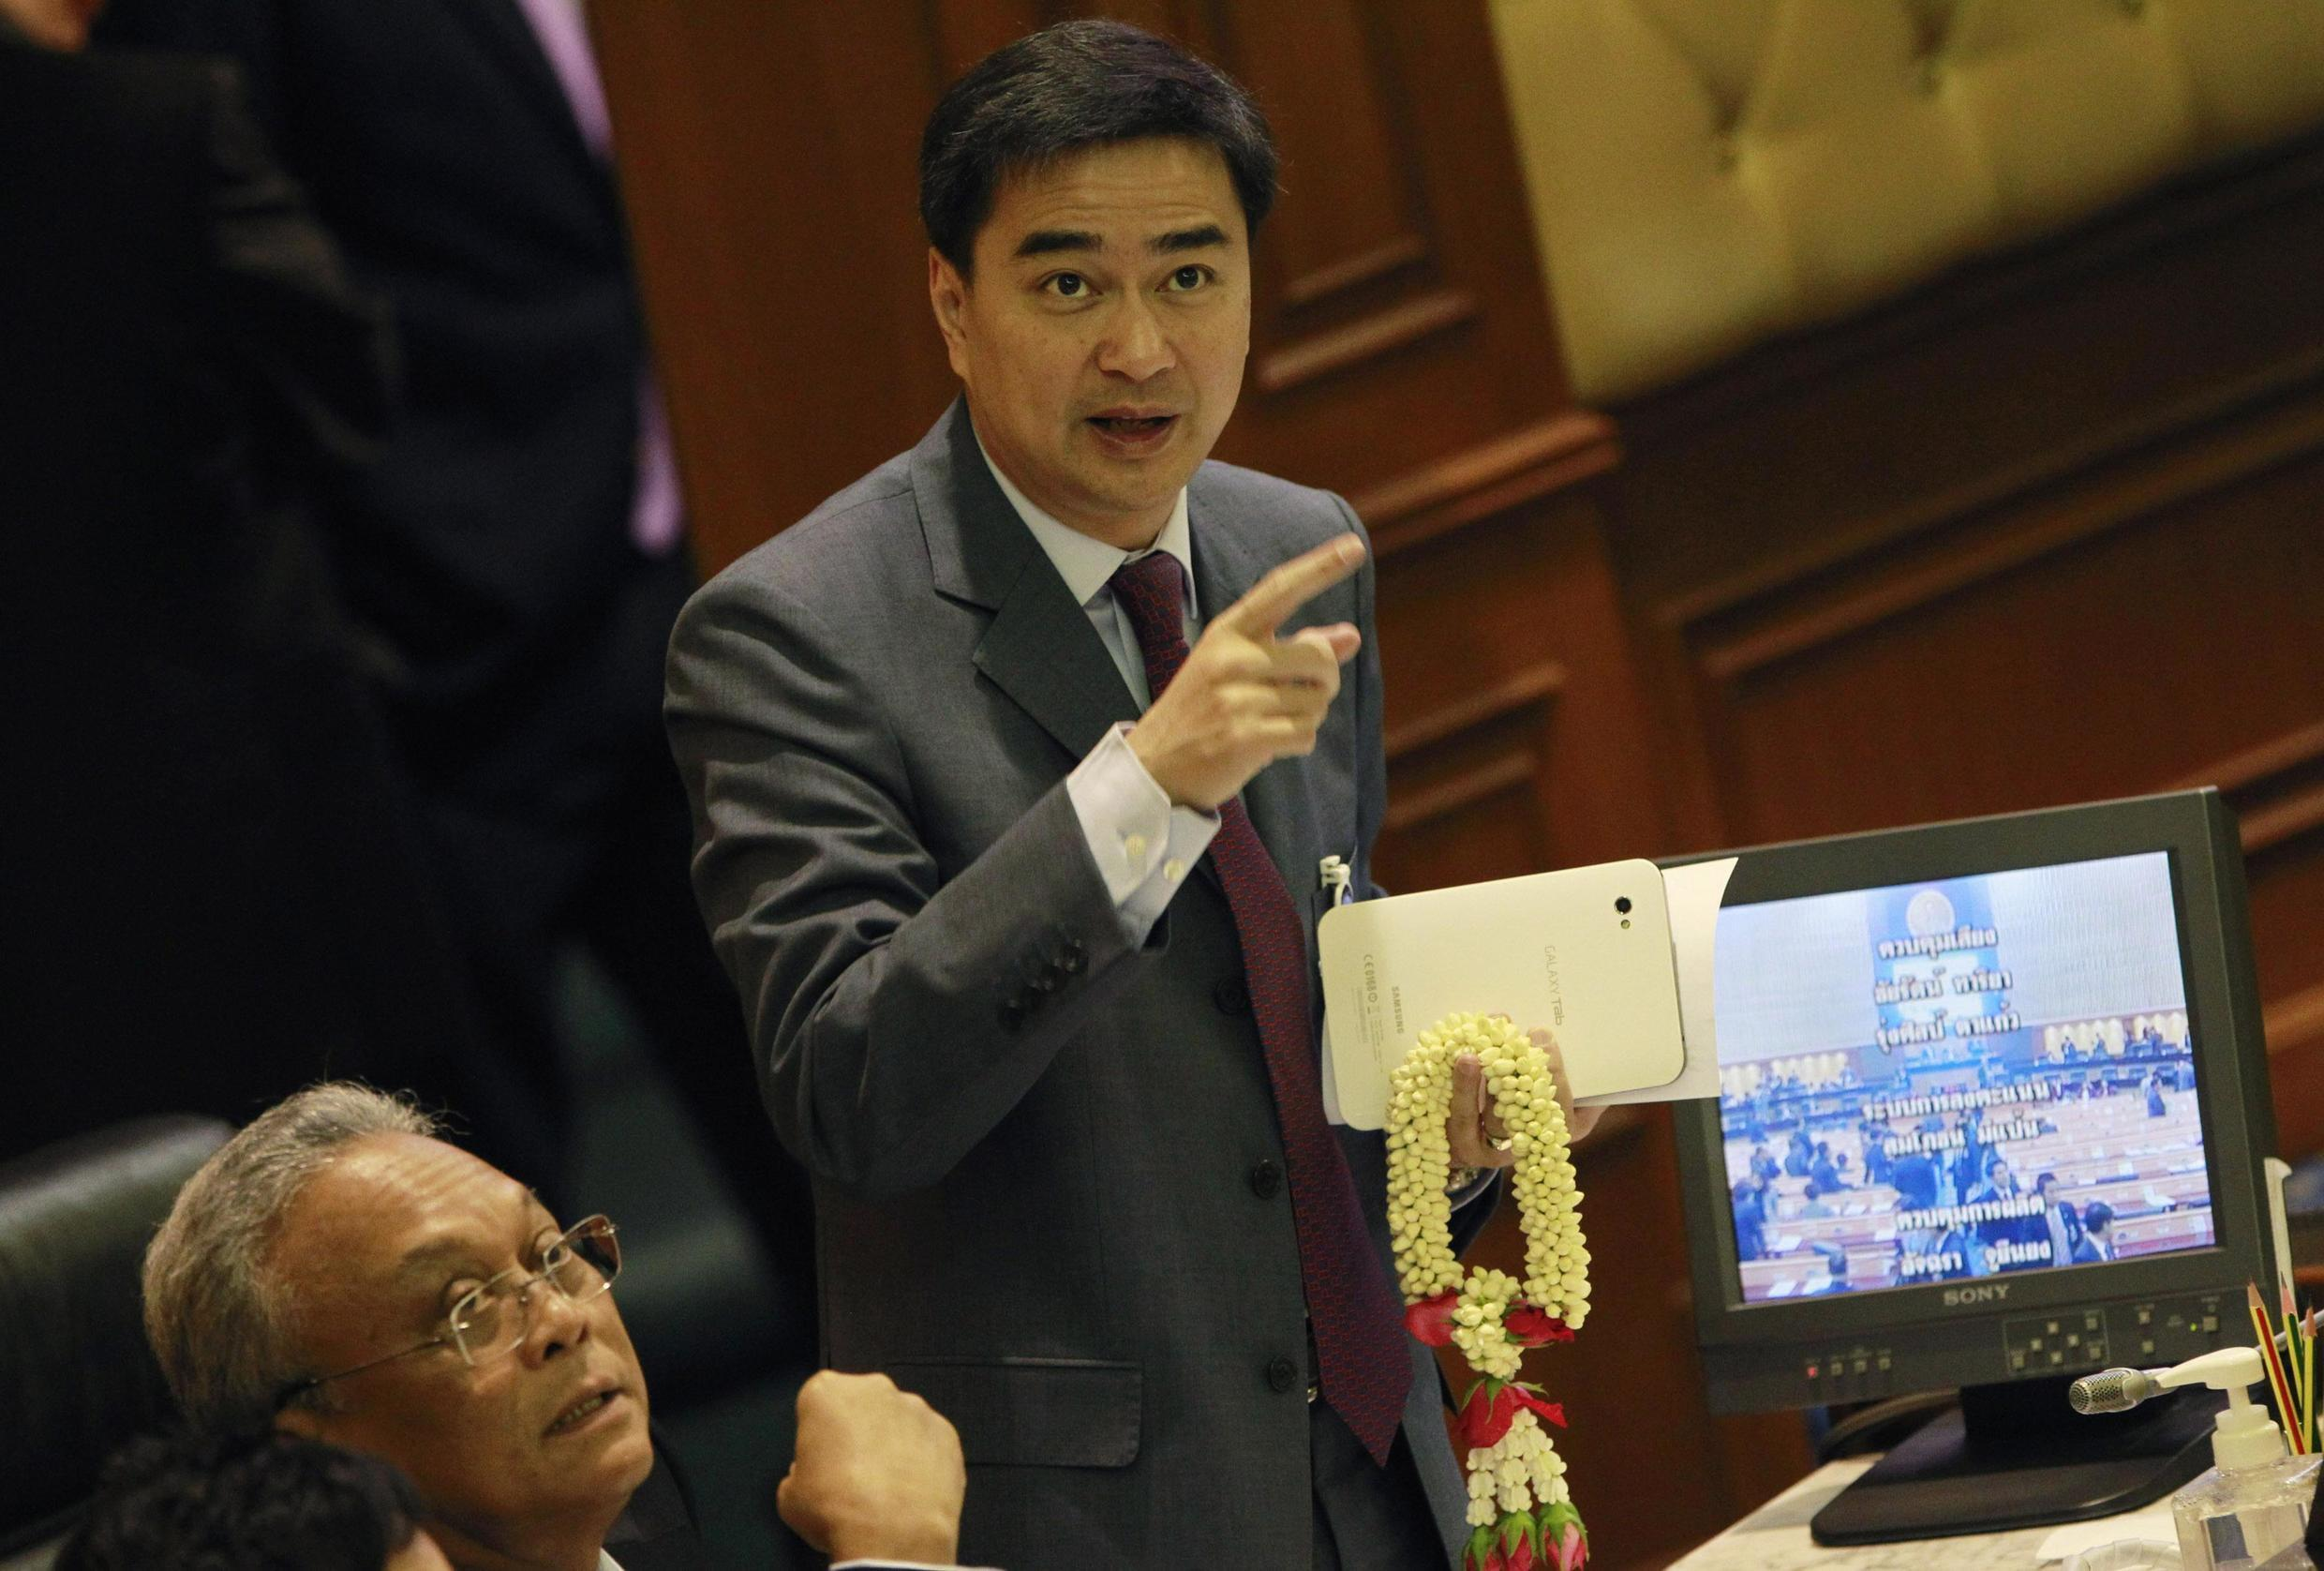 Thai Prime Minister Abhisit Vejjajiva looks at monitors displaying the votes during the censure debate, 19 March 2011